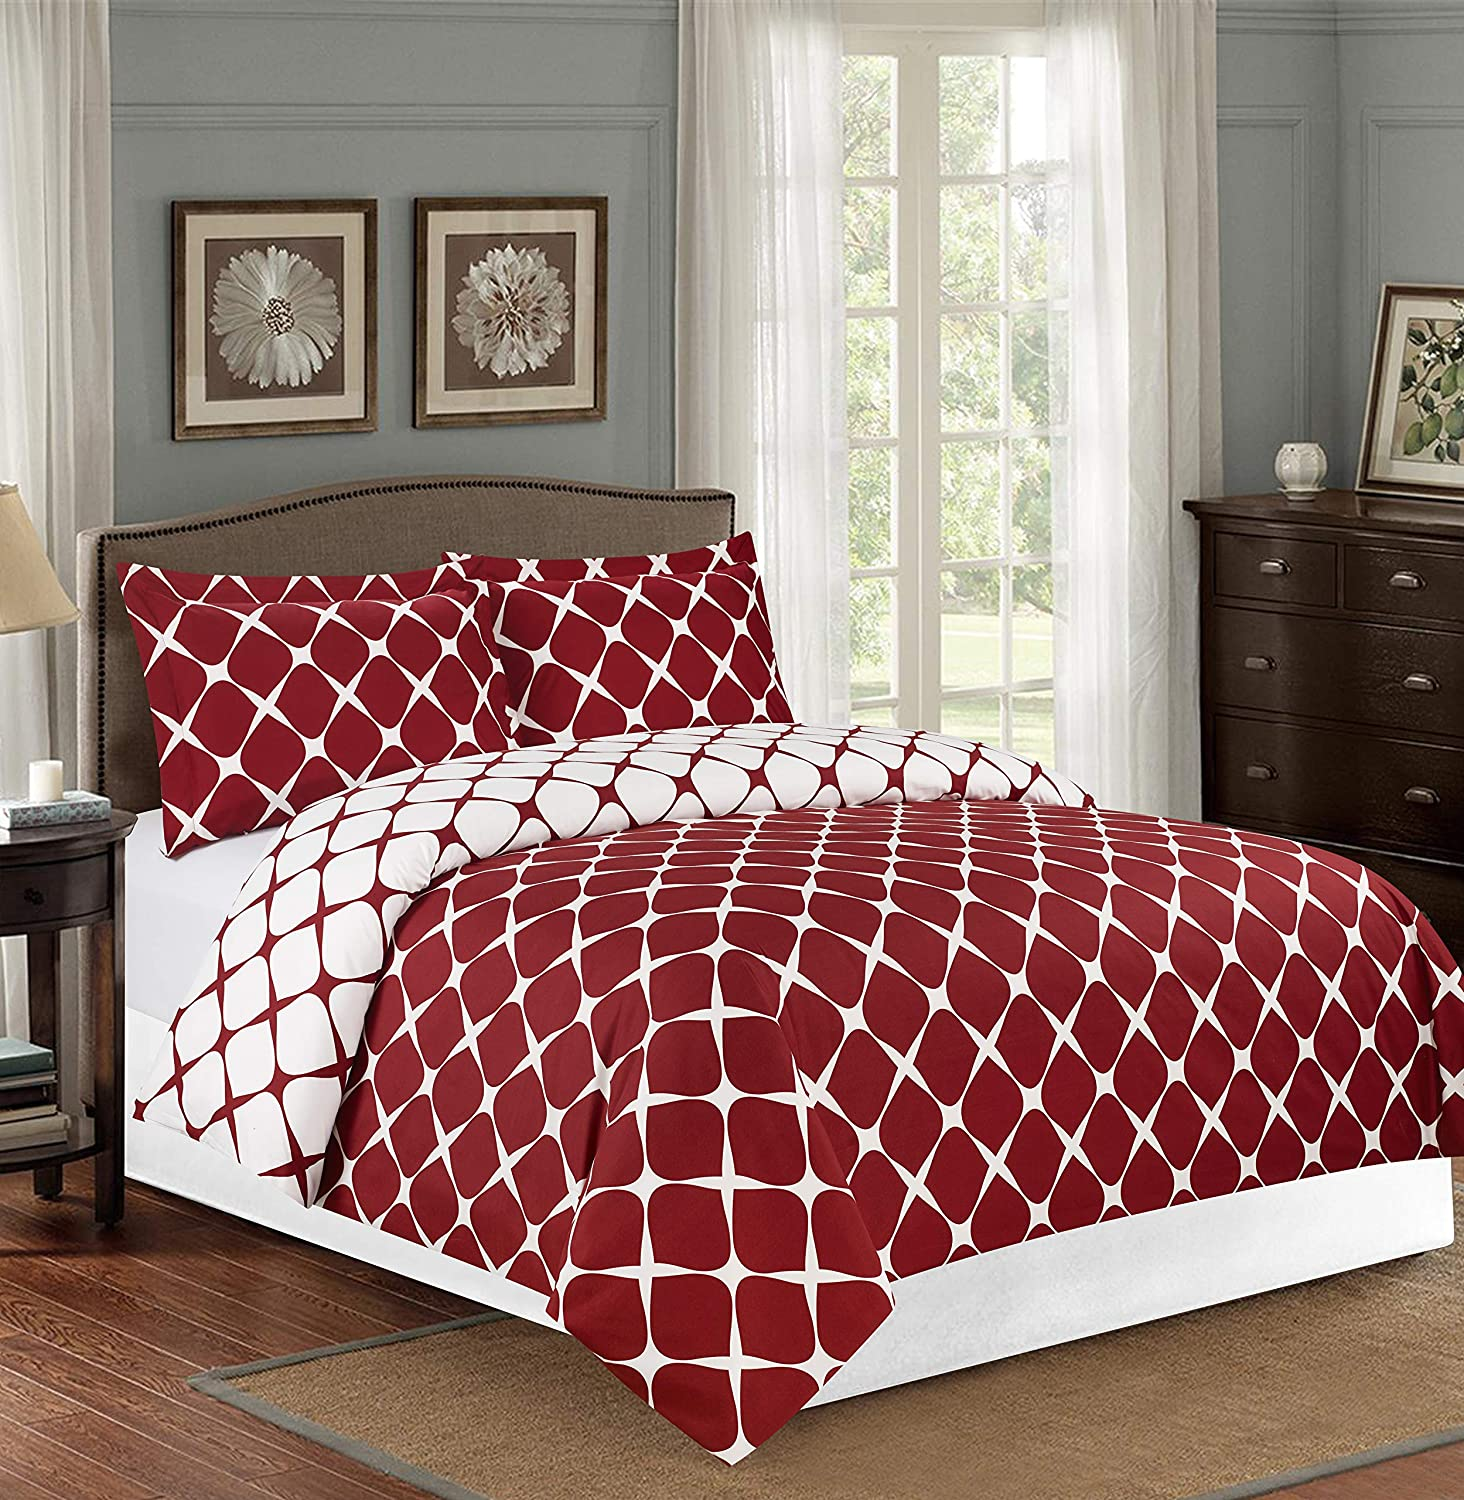 Elegant Comfort 1500 Thread Count Reversible Duvet Cover Set with Sham, Twin/Twin XL, Burgundy